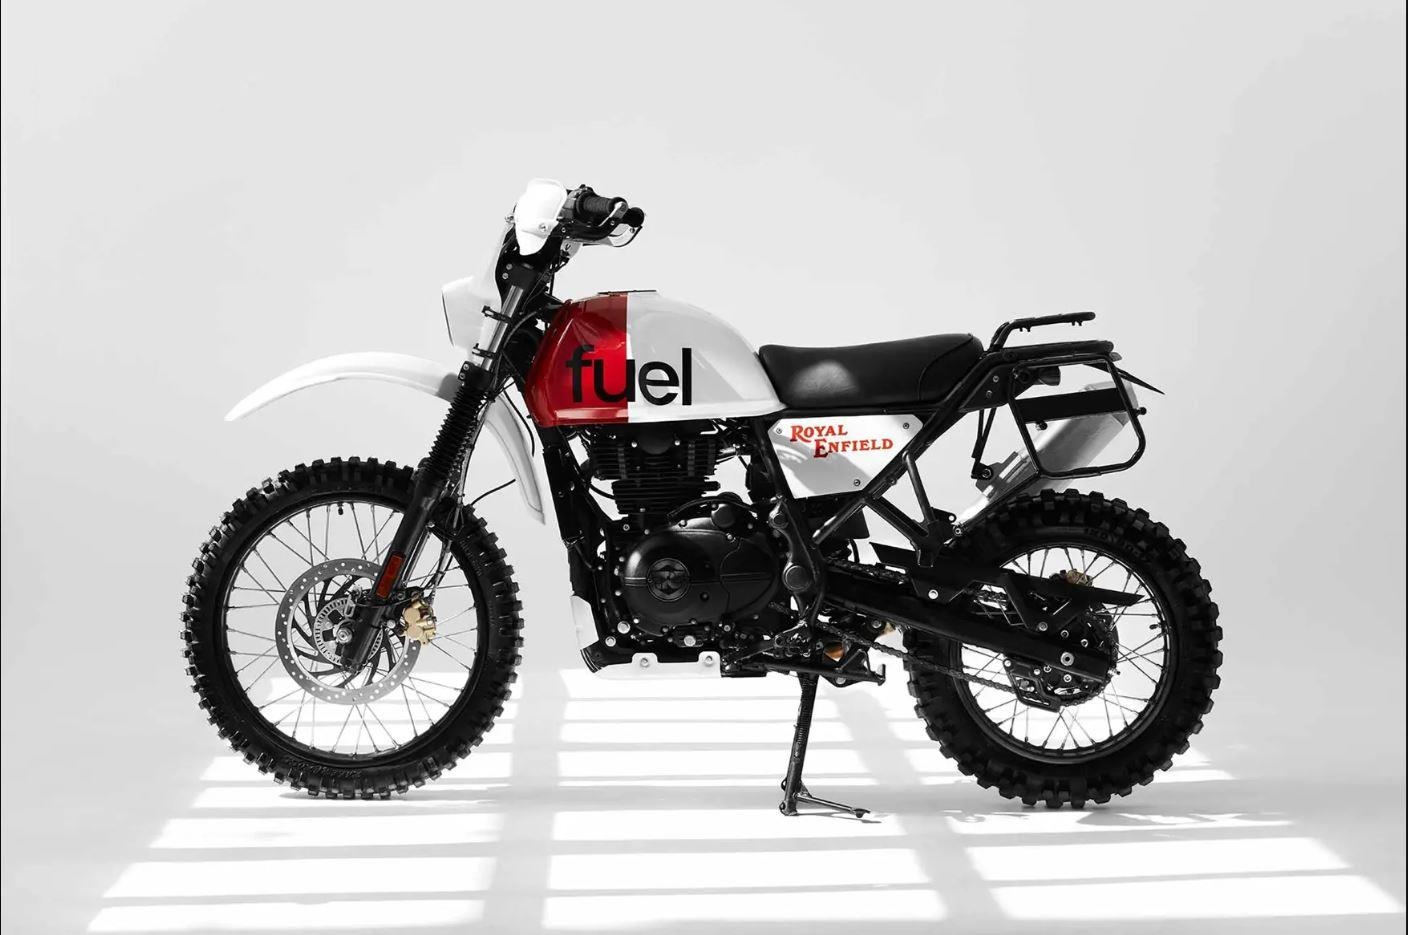 Fuel Royal Enfield Himalayan